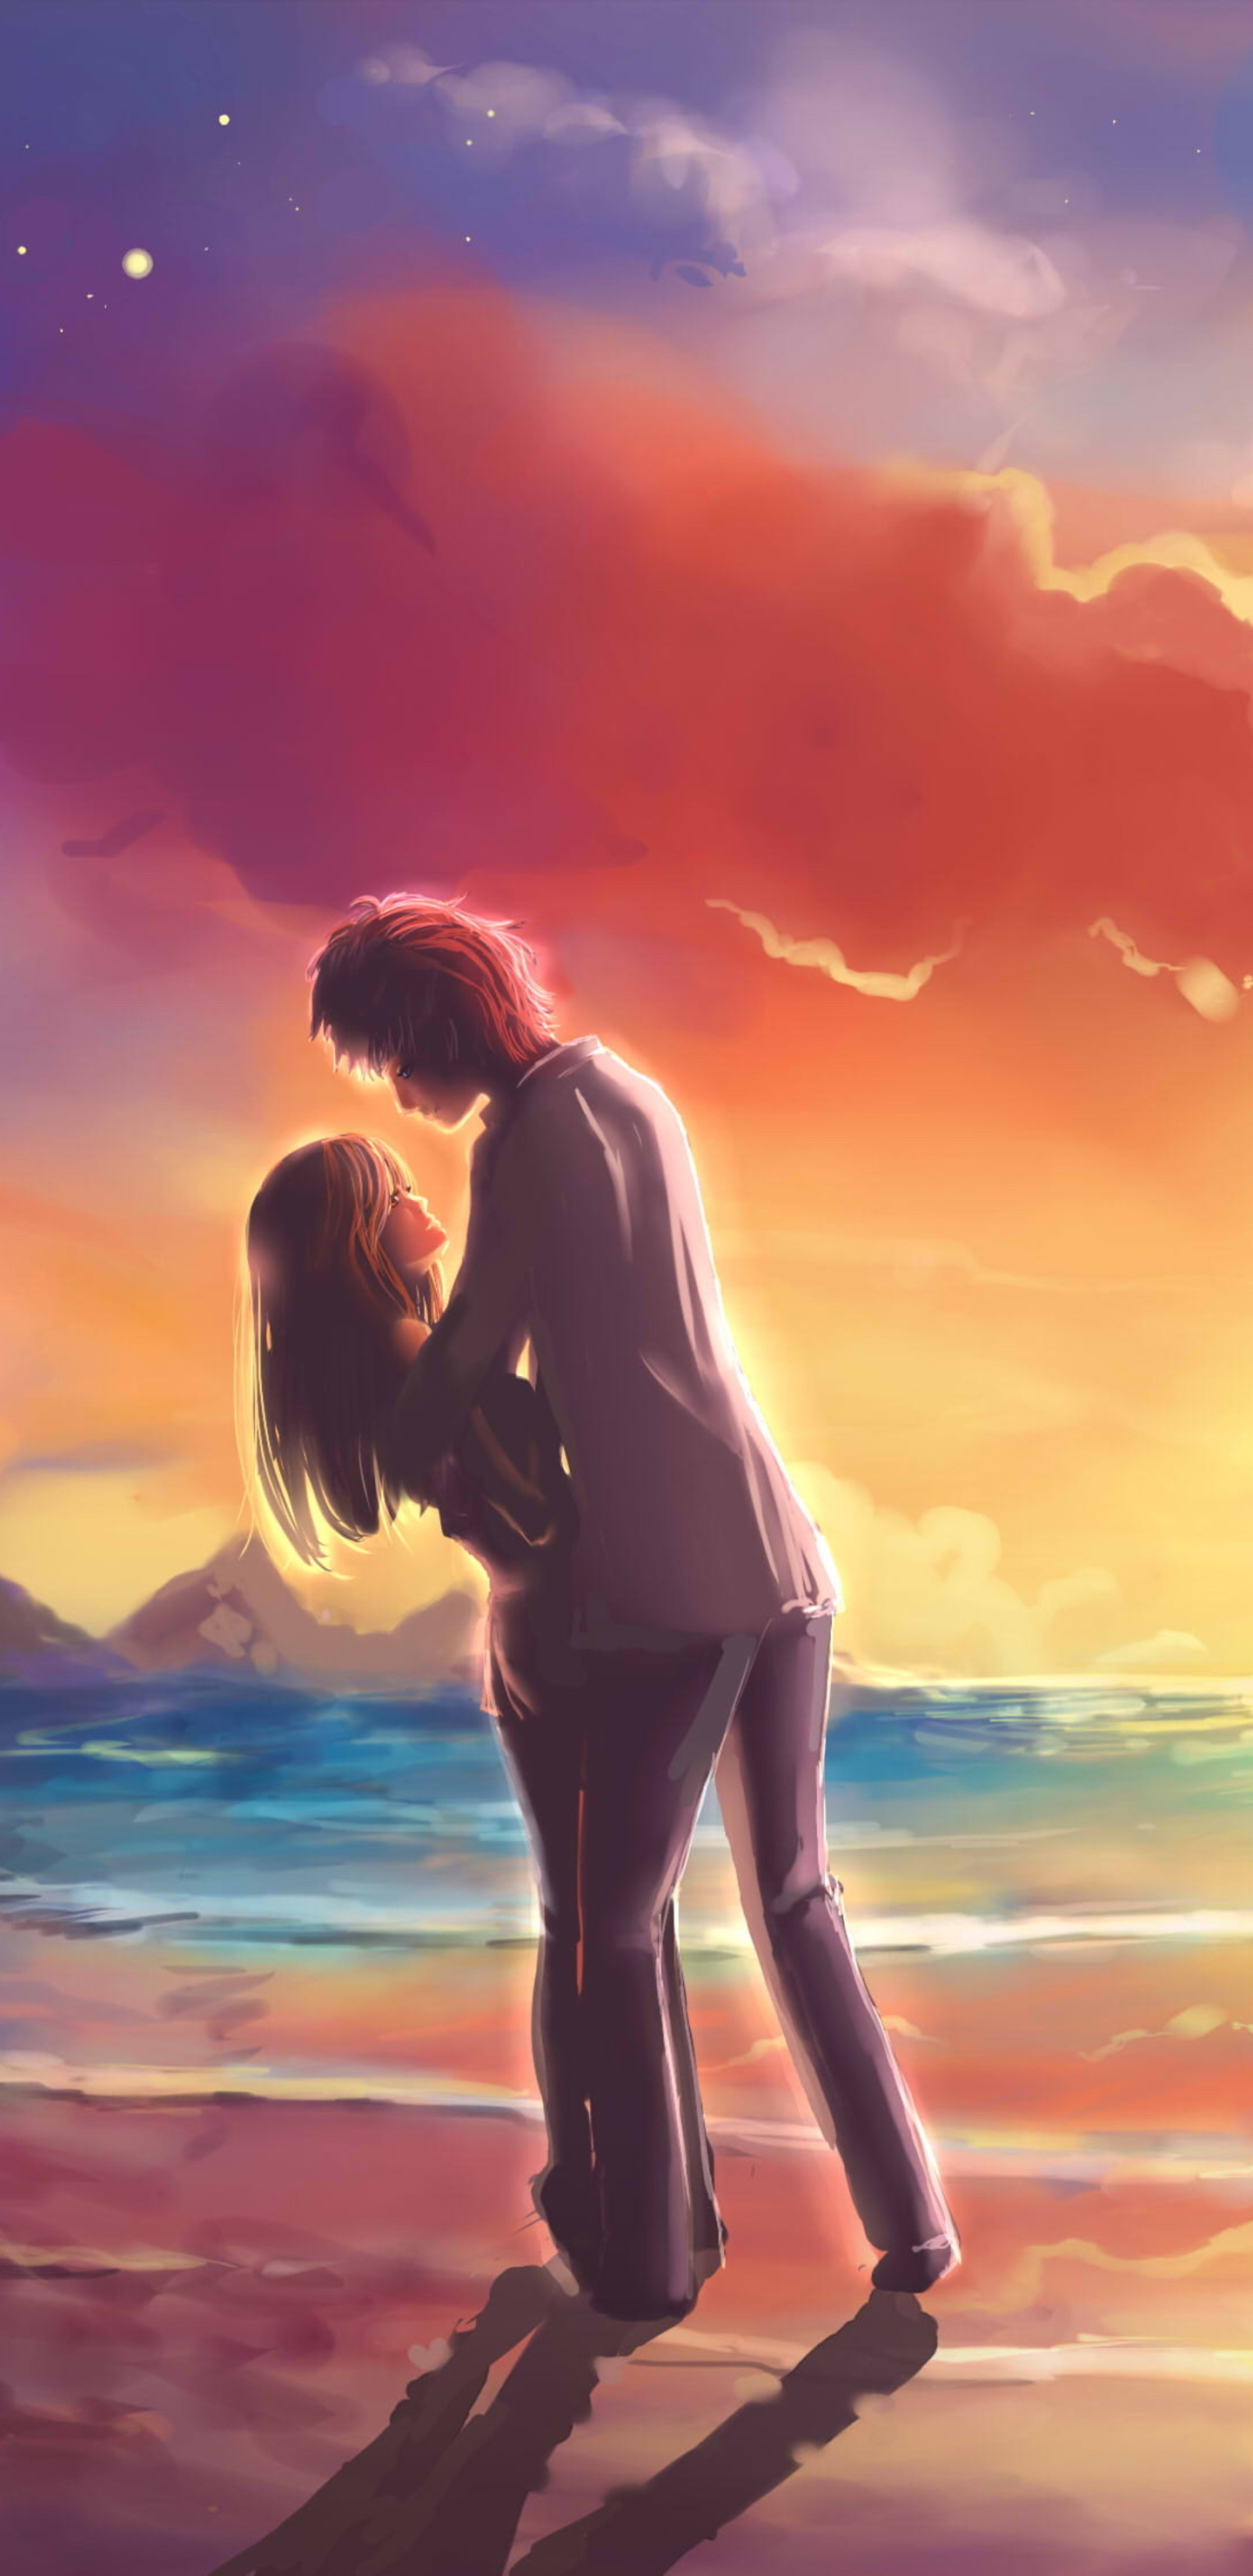 Cool Wallpaper Love Samsung Galaxy - couples-coast-love-4k-33-1440x2960  You Should Have_994170.jpg